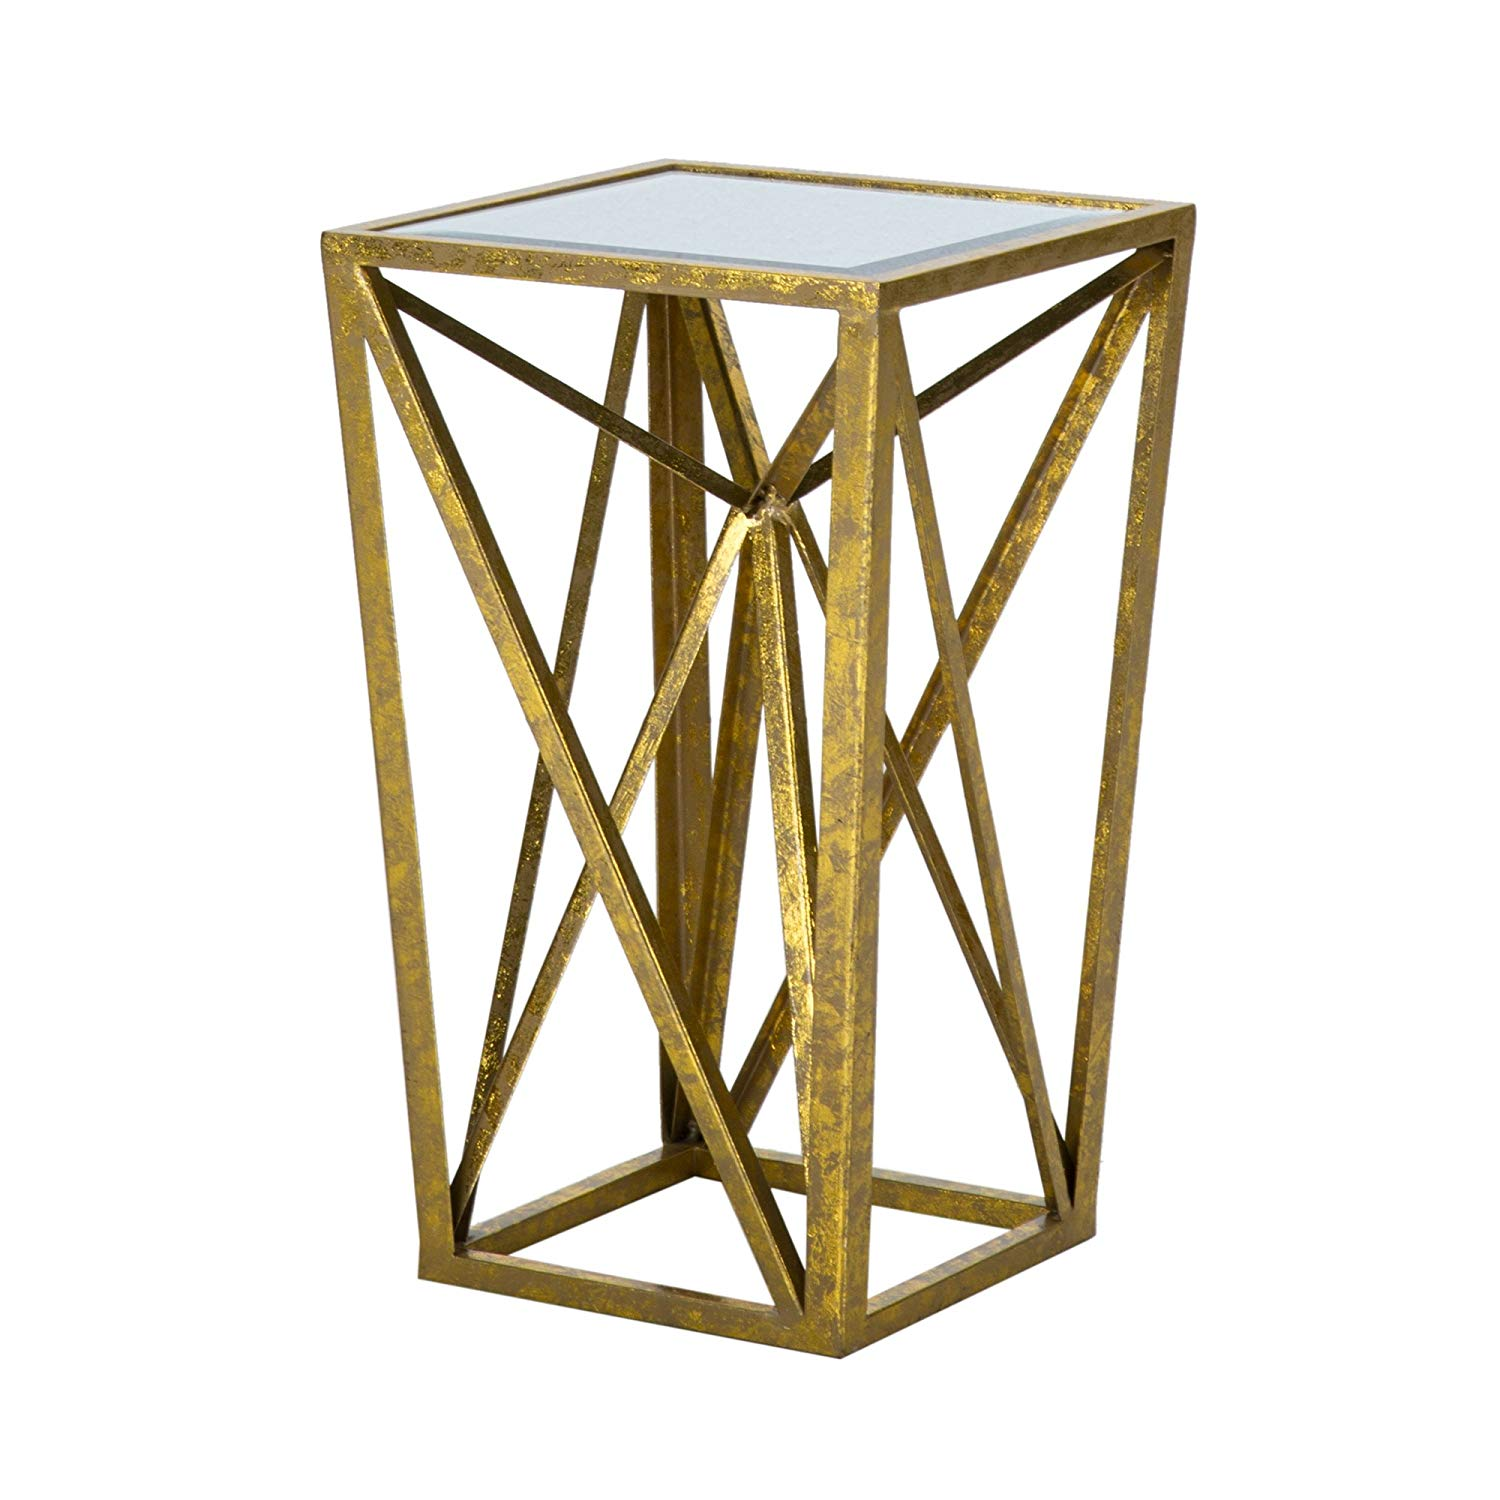 madison park zee accent tables mirror glass metal gold drum table side angular design modern style end piece top hollow round teal placemats and napkins large stackable outdoor